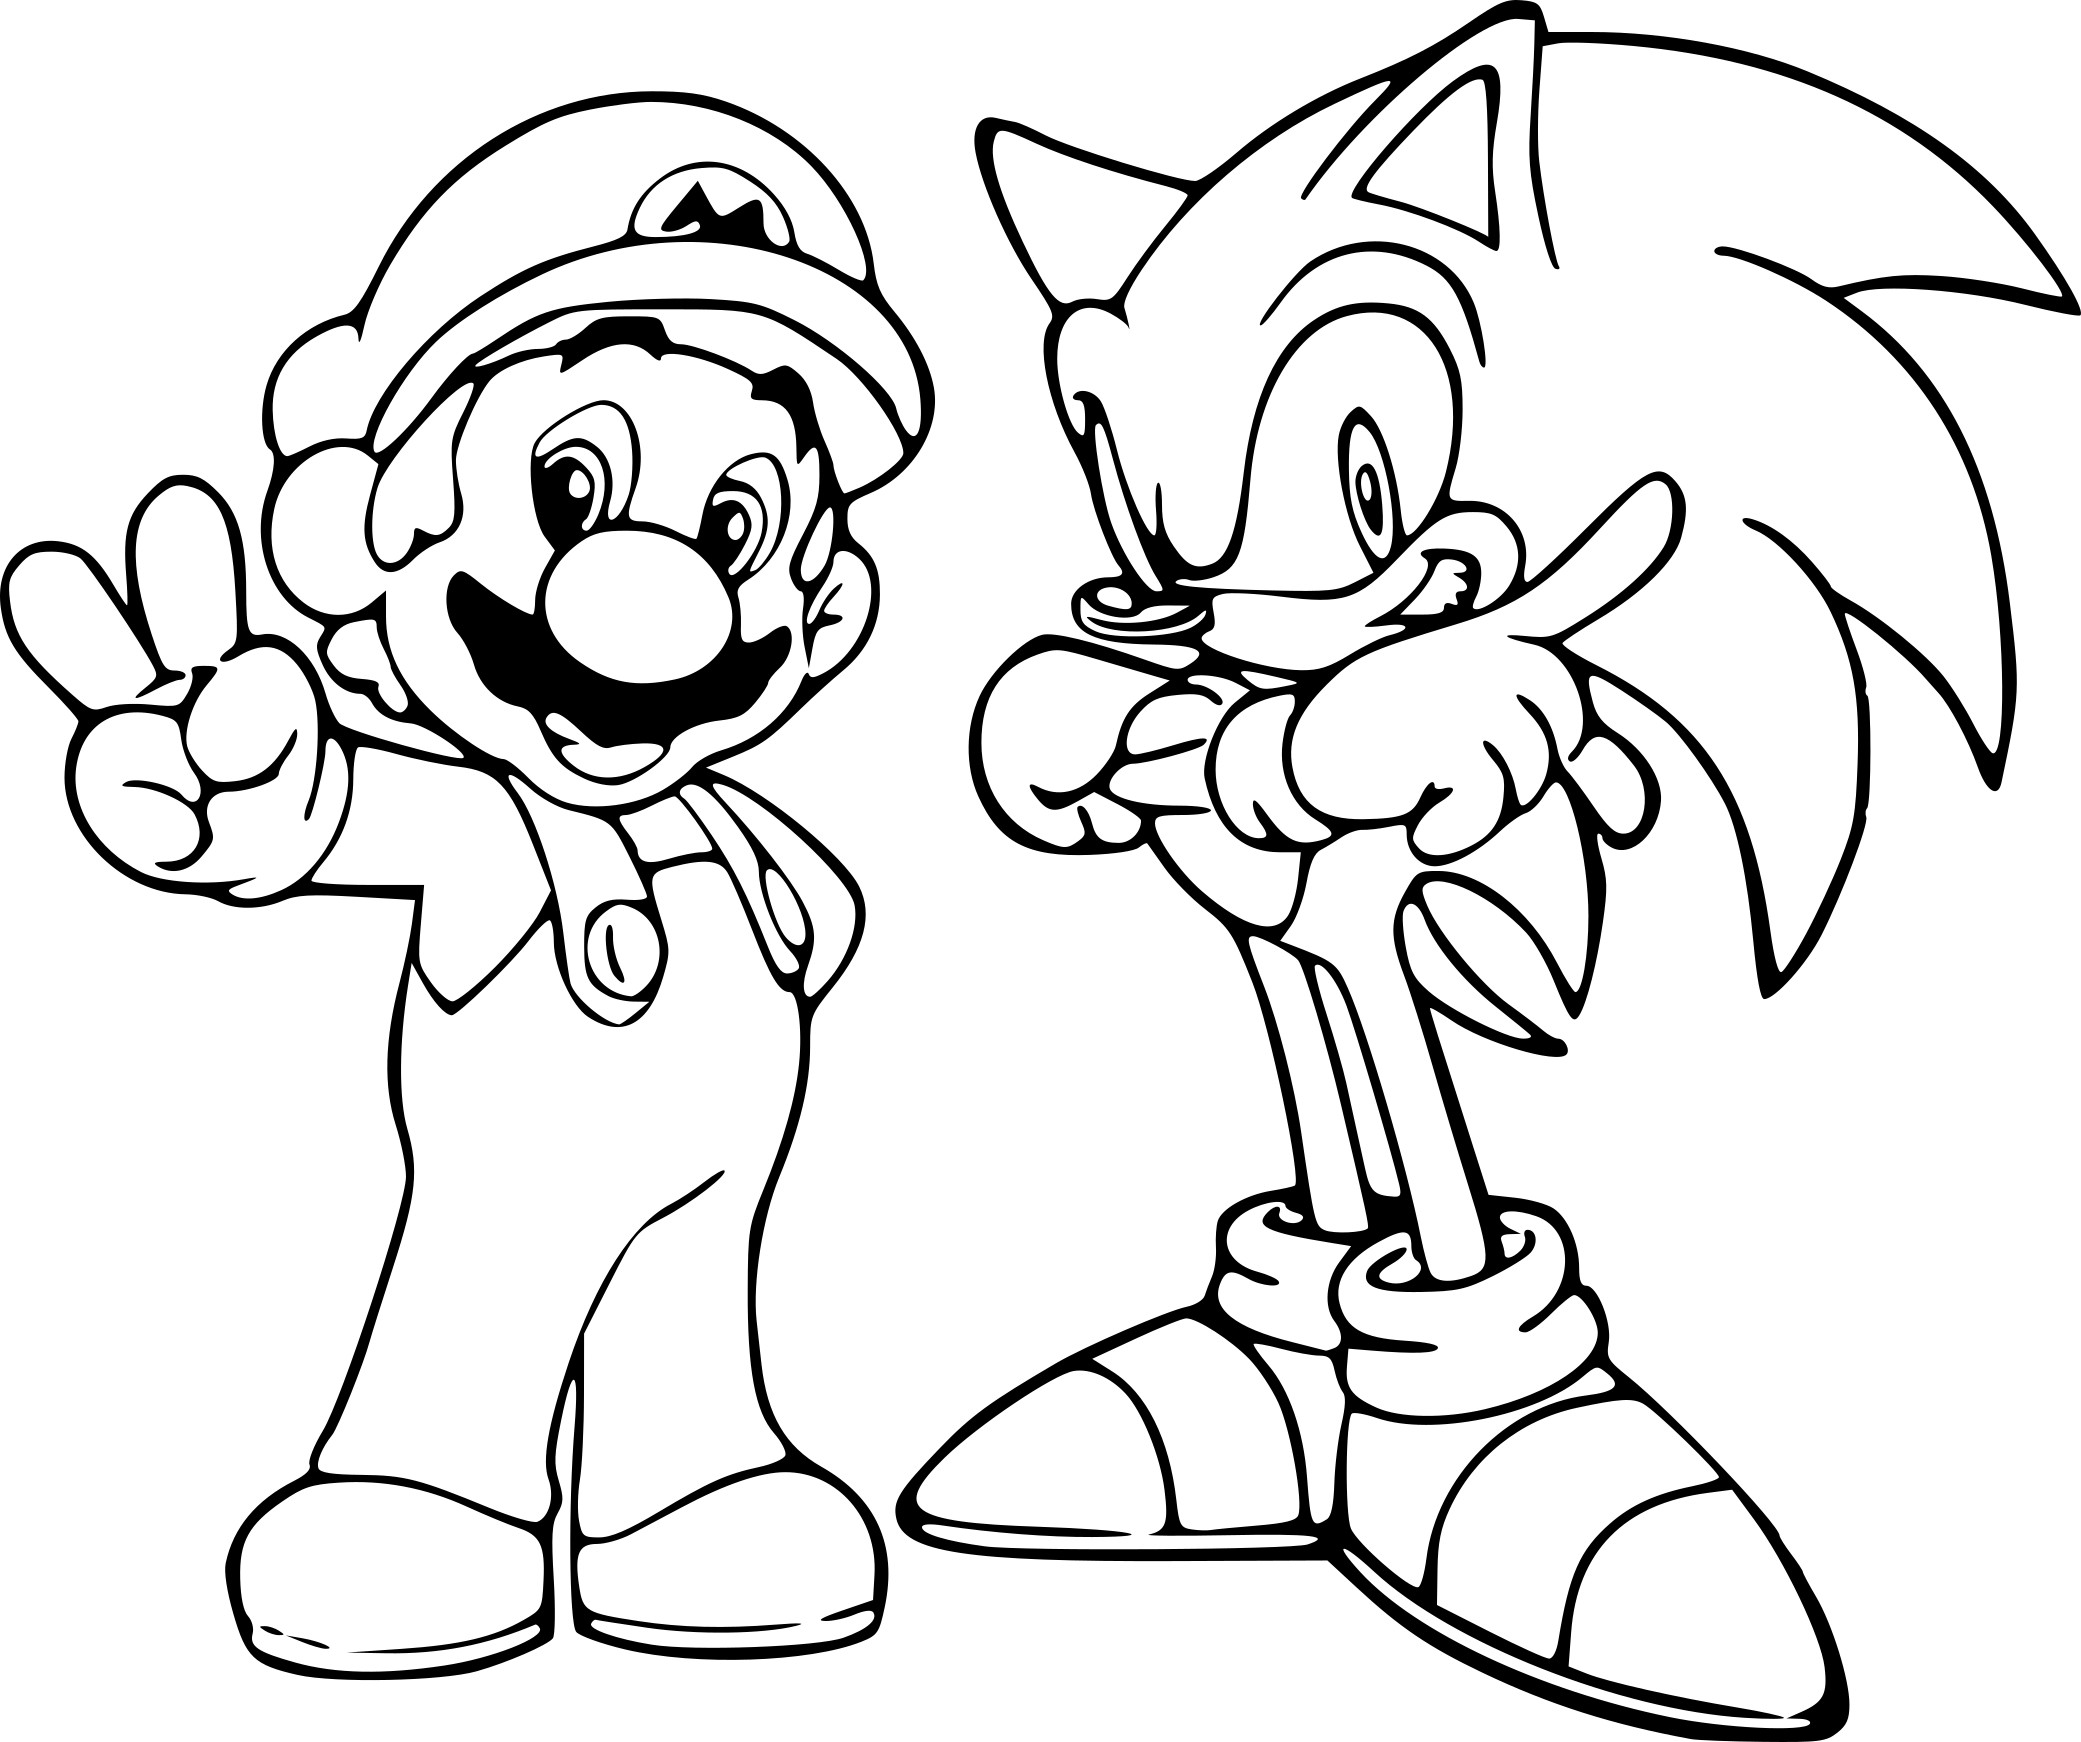 Coloriage sonic et mario imprimer sur coloriages info for Mario and sonic coloring pages